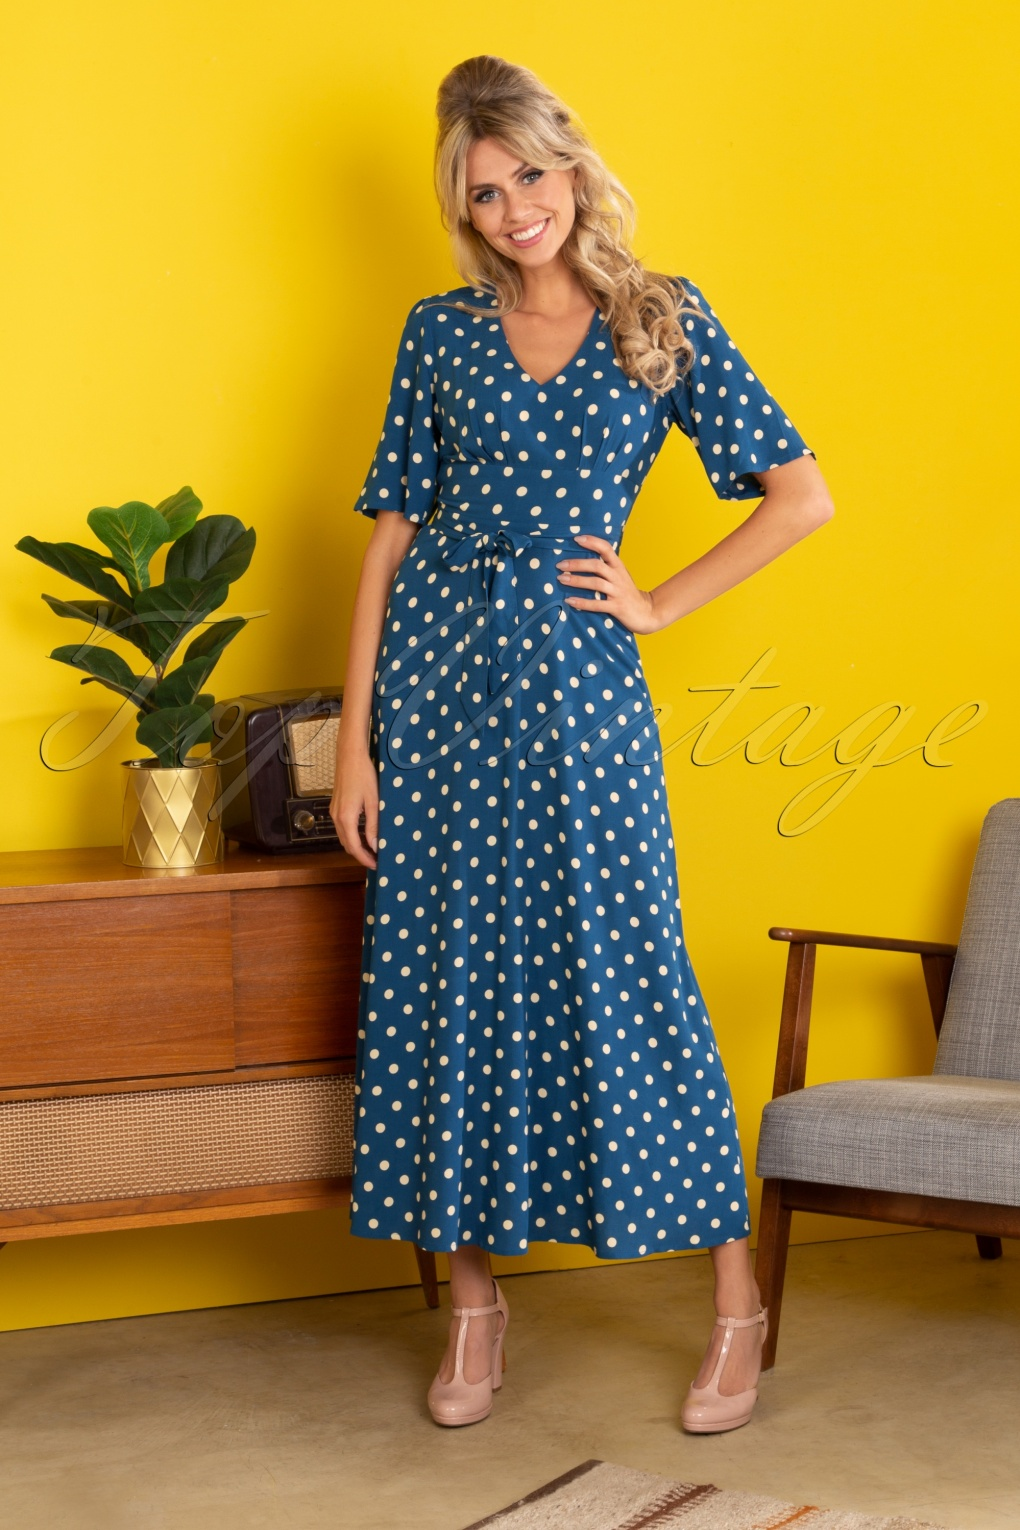 Vintage Polka Dot Dresses – 50s Spotty and Ditsy Prints 70s Shiloh Polkadot Maxi Dress in Autumn Blue £115.83 AT vintagedancer.com